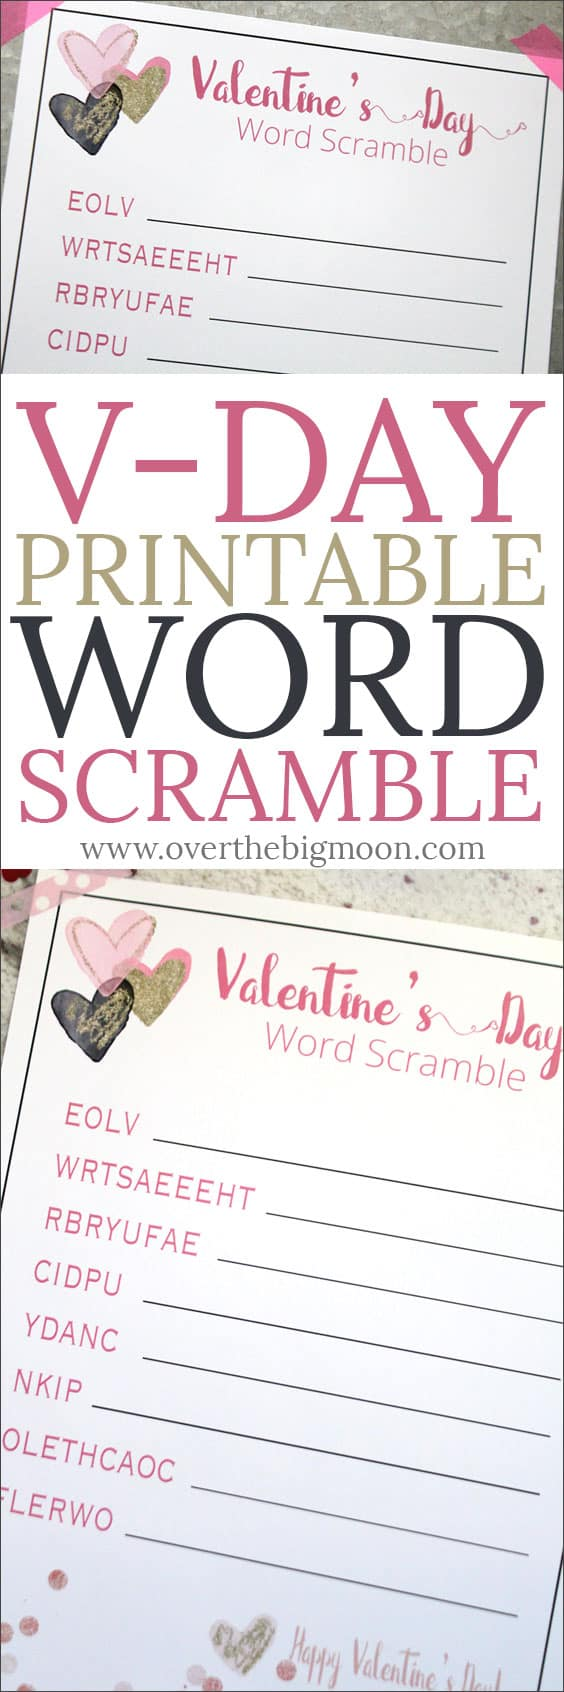 Valentineu0027s Day Printable Word Scramble For Kids! From Overthebigmoon.com!